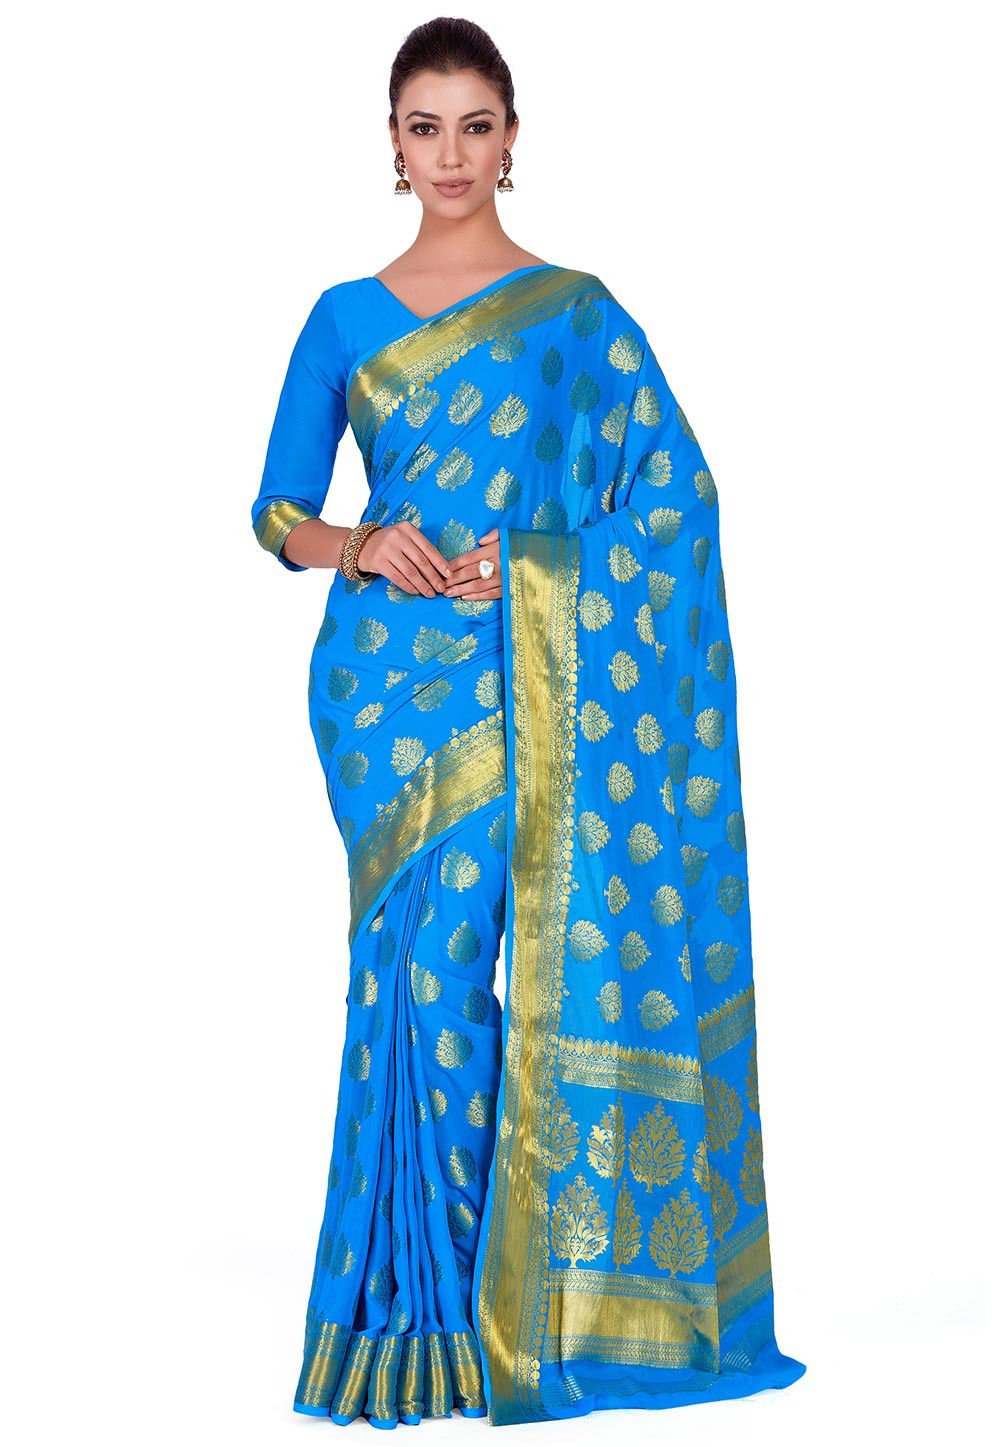 Kanchipuram Chiffon Saree in Blue